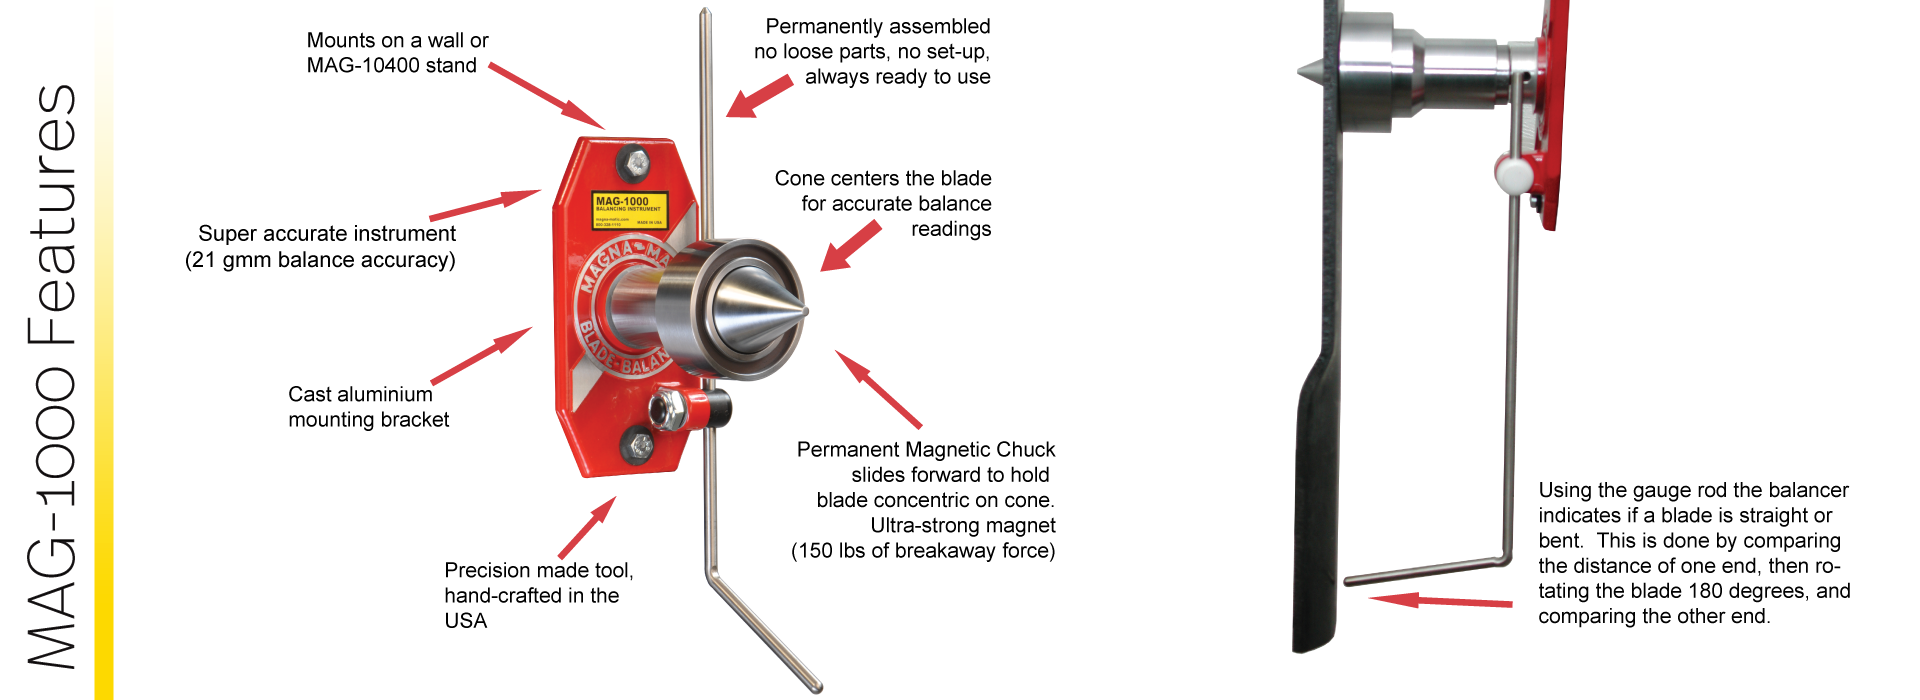 MAG-1000 Features